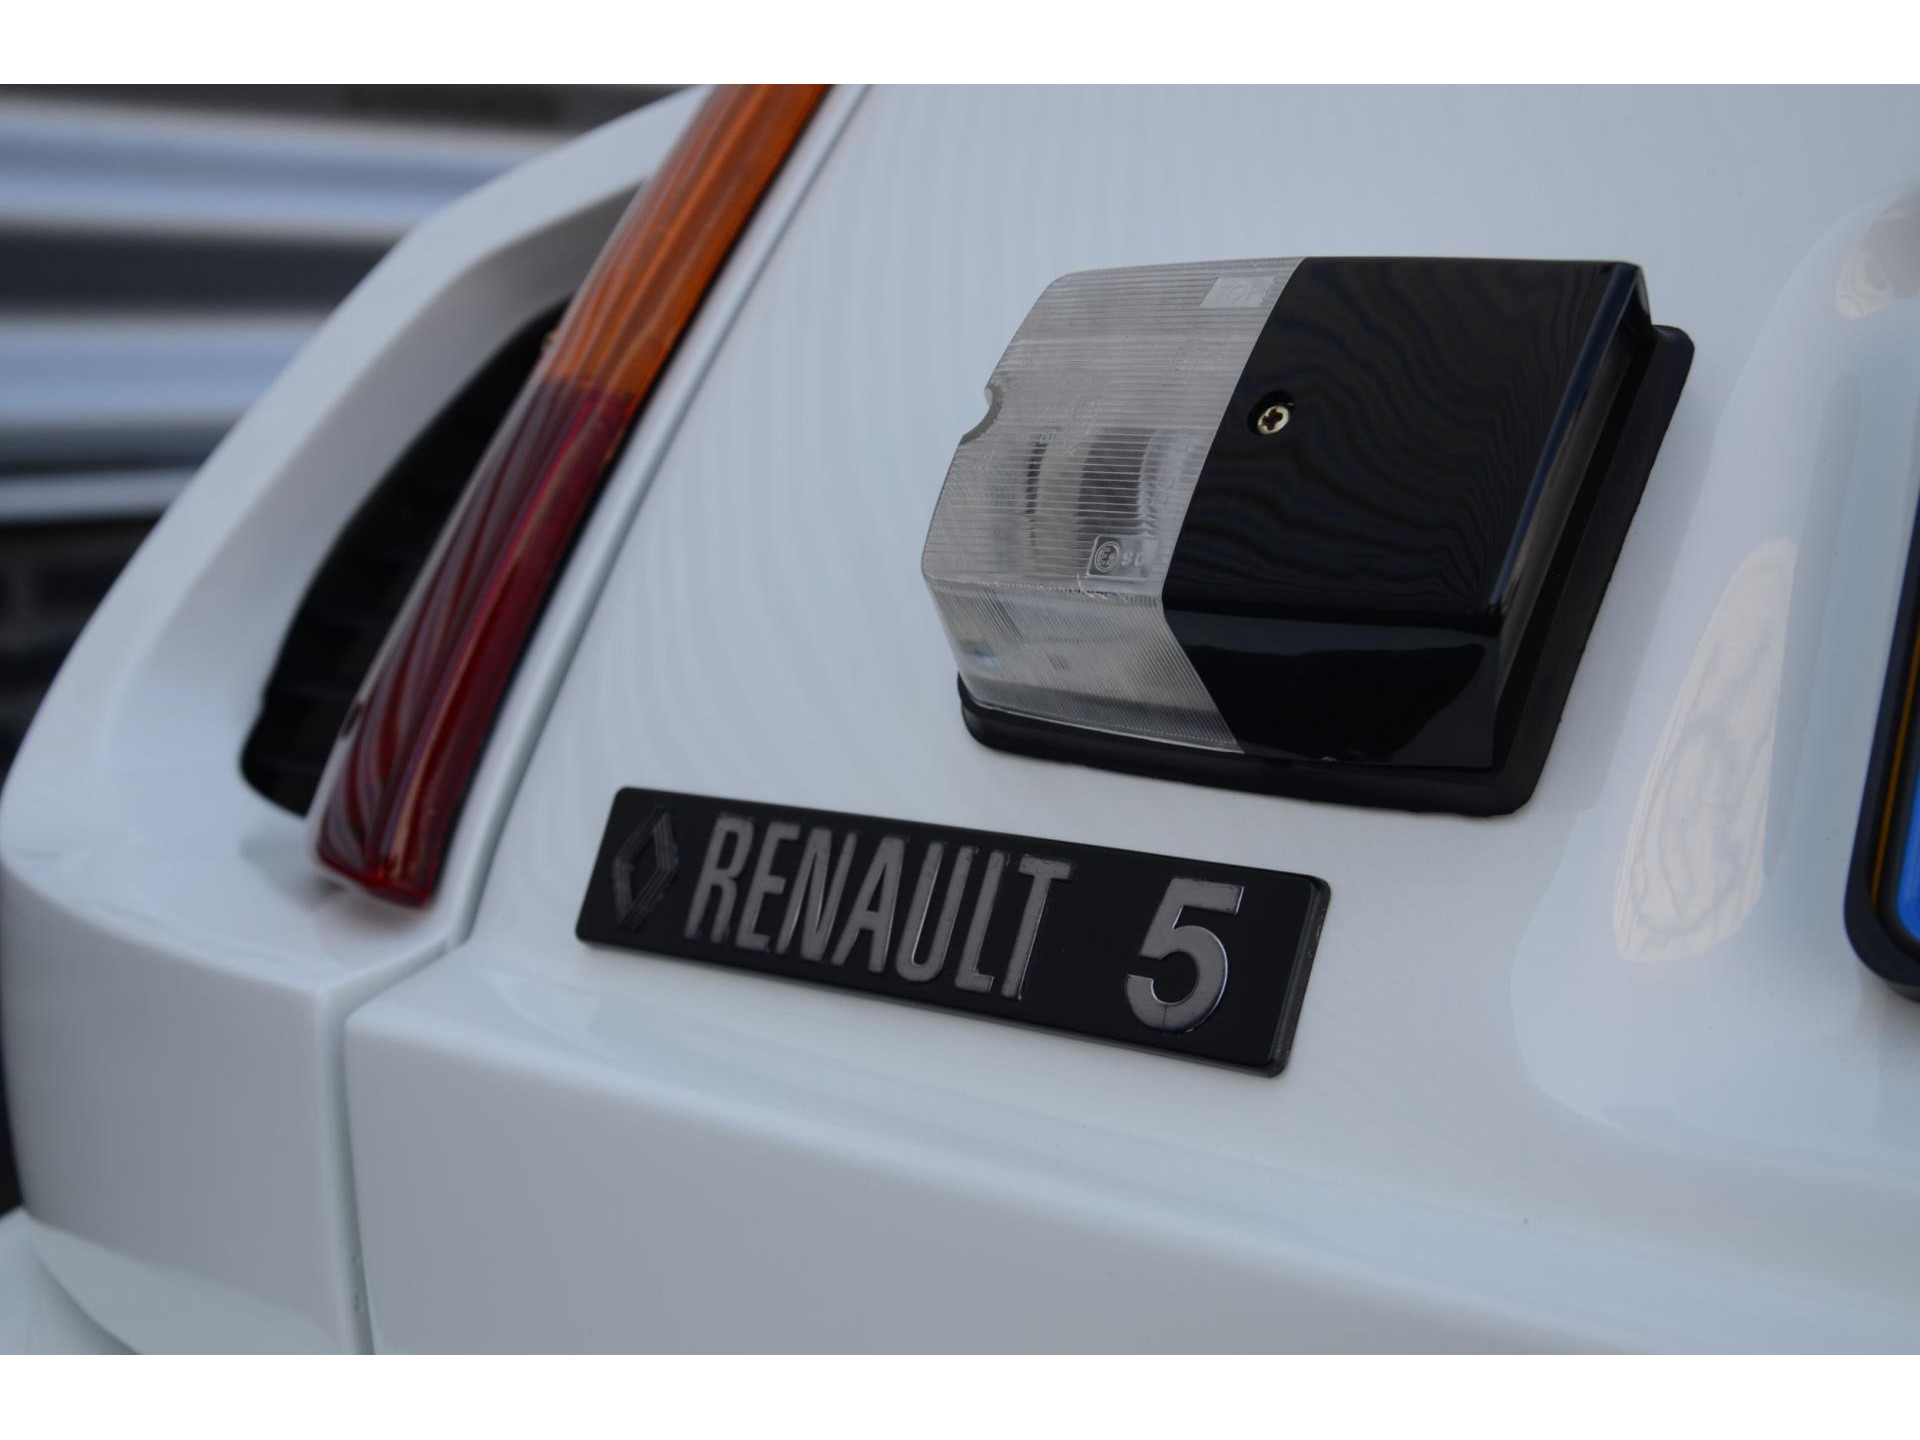 Renault-5-Turbo-Series-1-for-sale-45